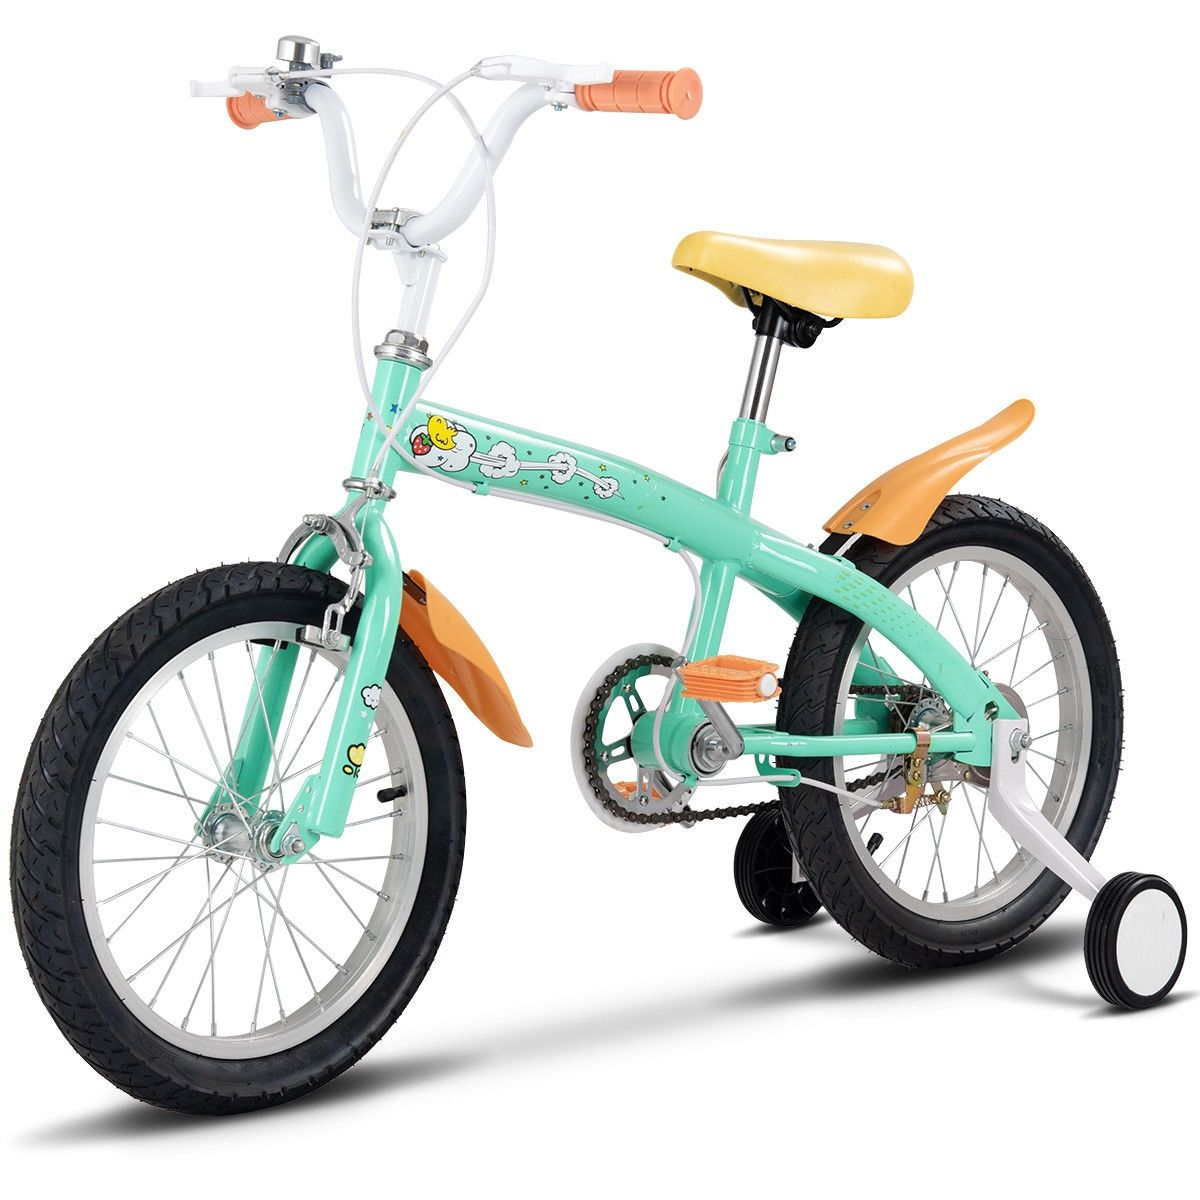 12 Outdoor Sports Kids Bicycle With Training Wheels Bell Yellow